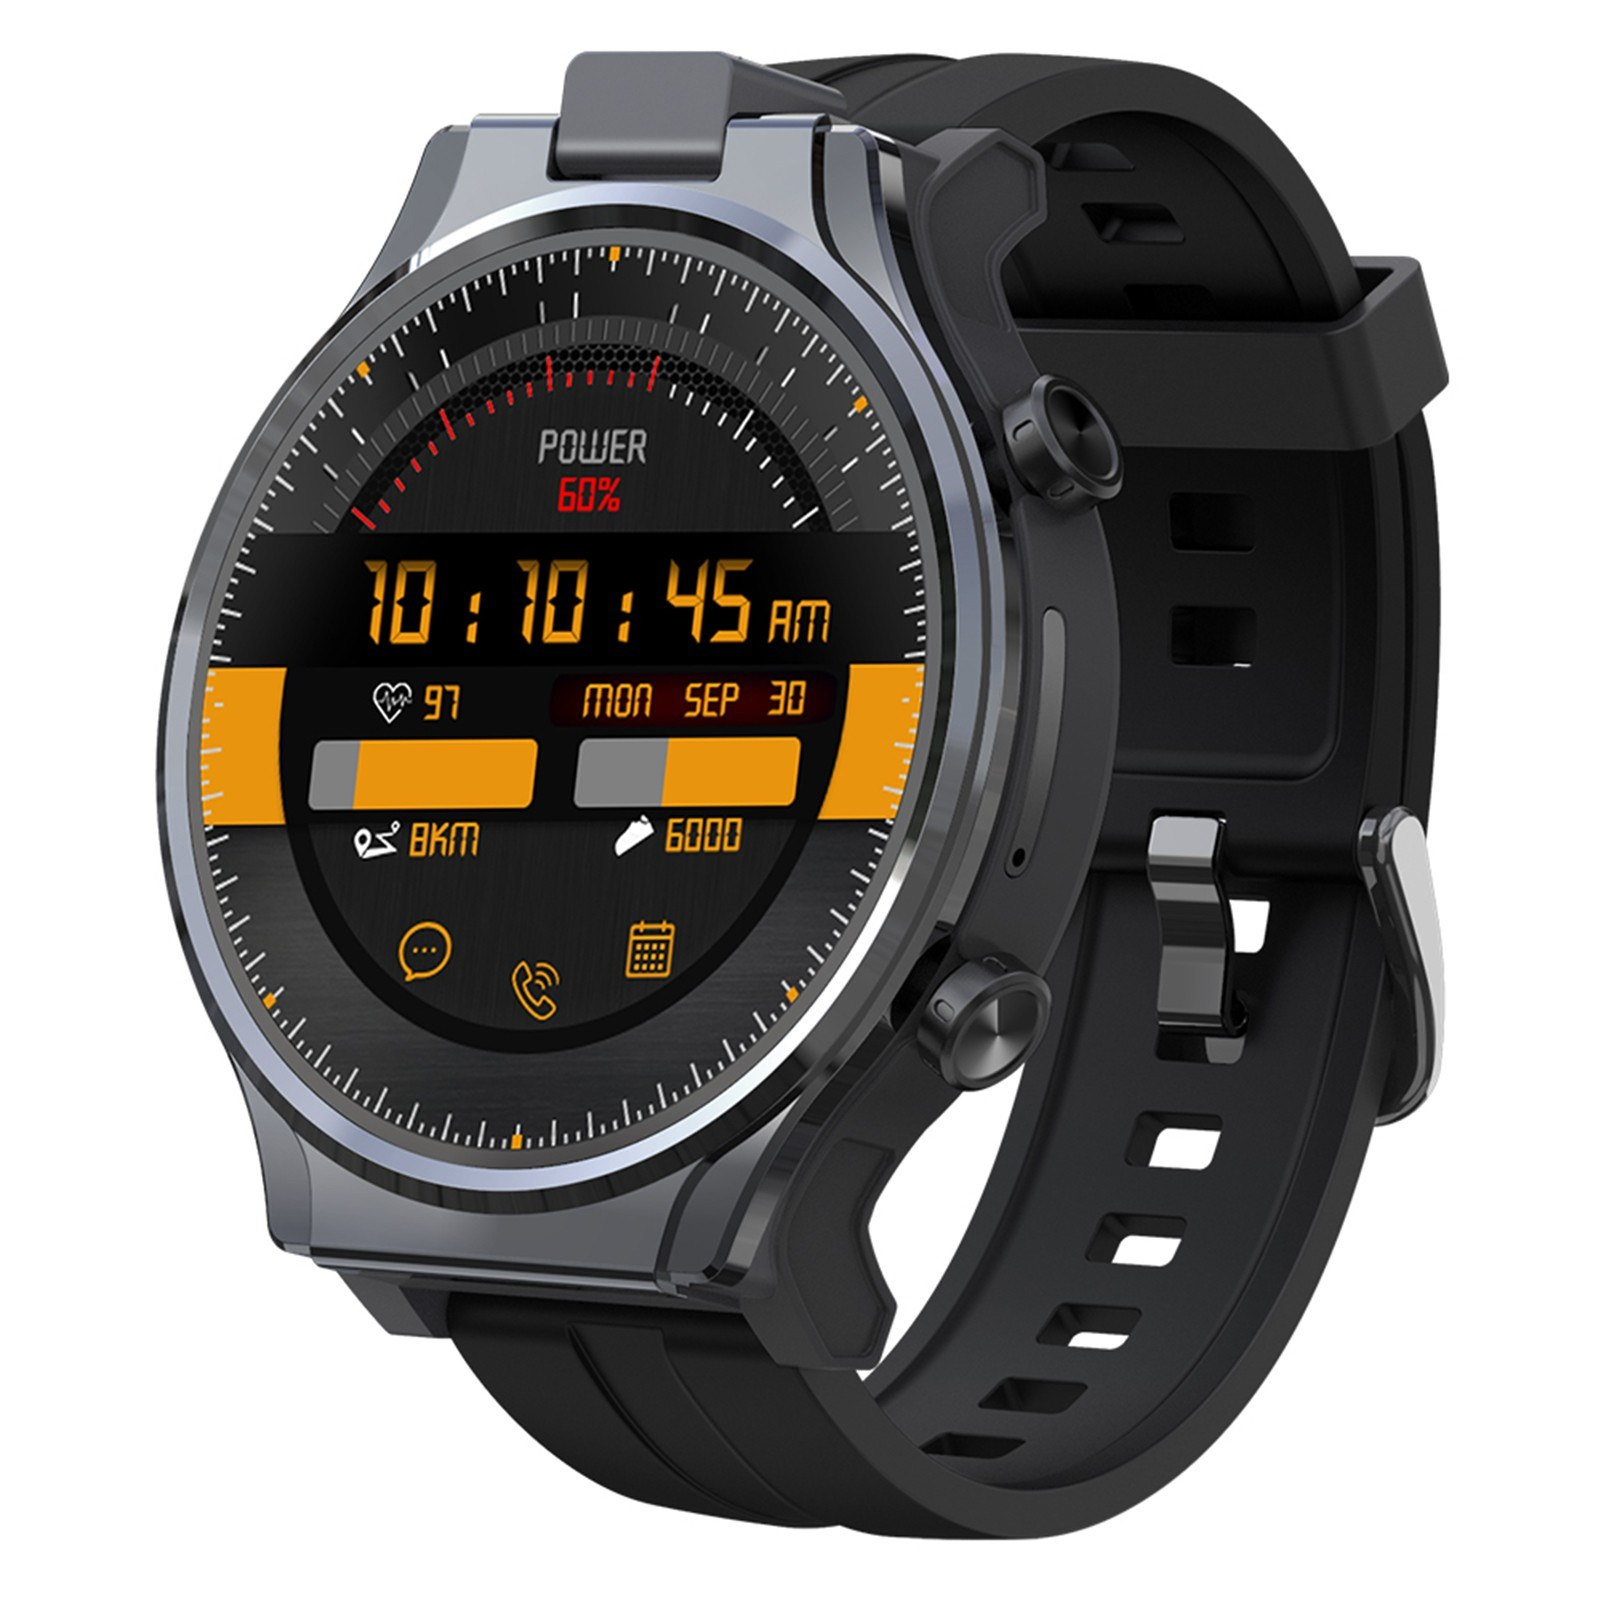 cafago.com - 54% OFF KOSPET PRIME 2 2.1-inch Full Touchscreen 4G Smart Watch 4GB+64GB with Replaceable Strap,free shipping+$254.14